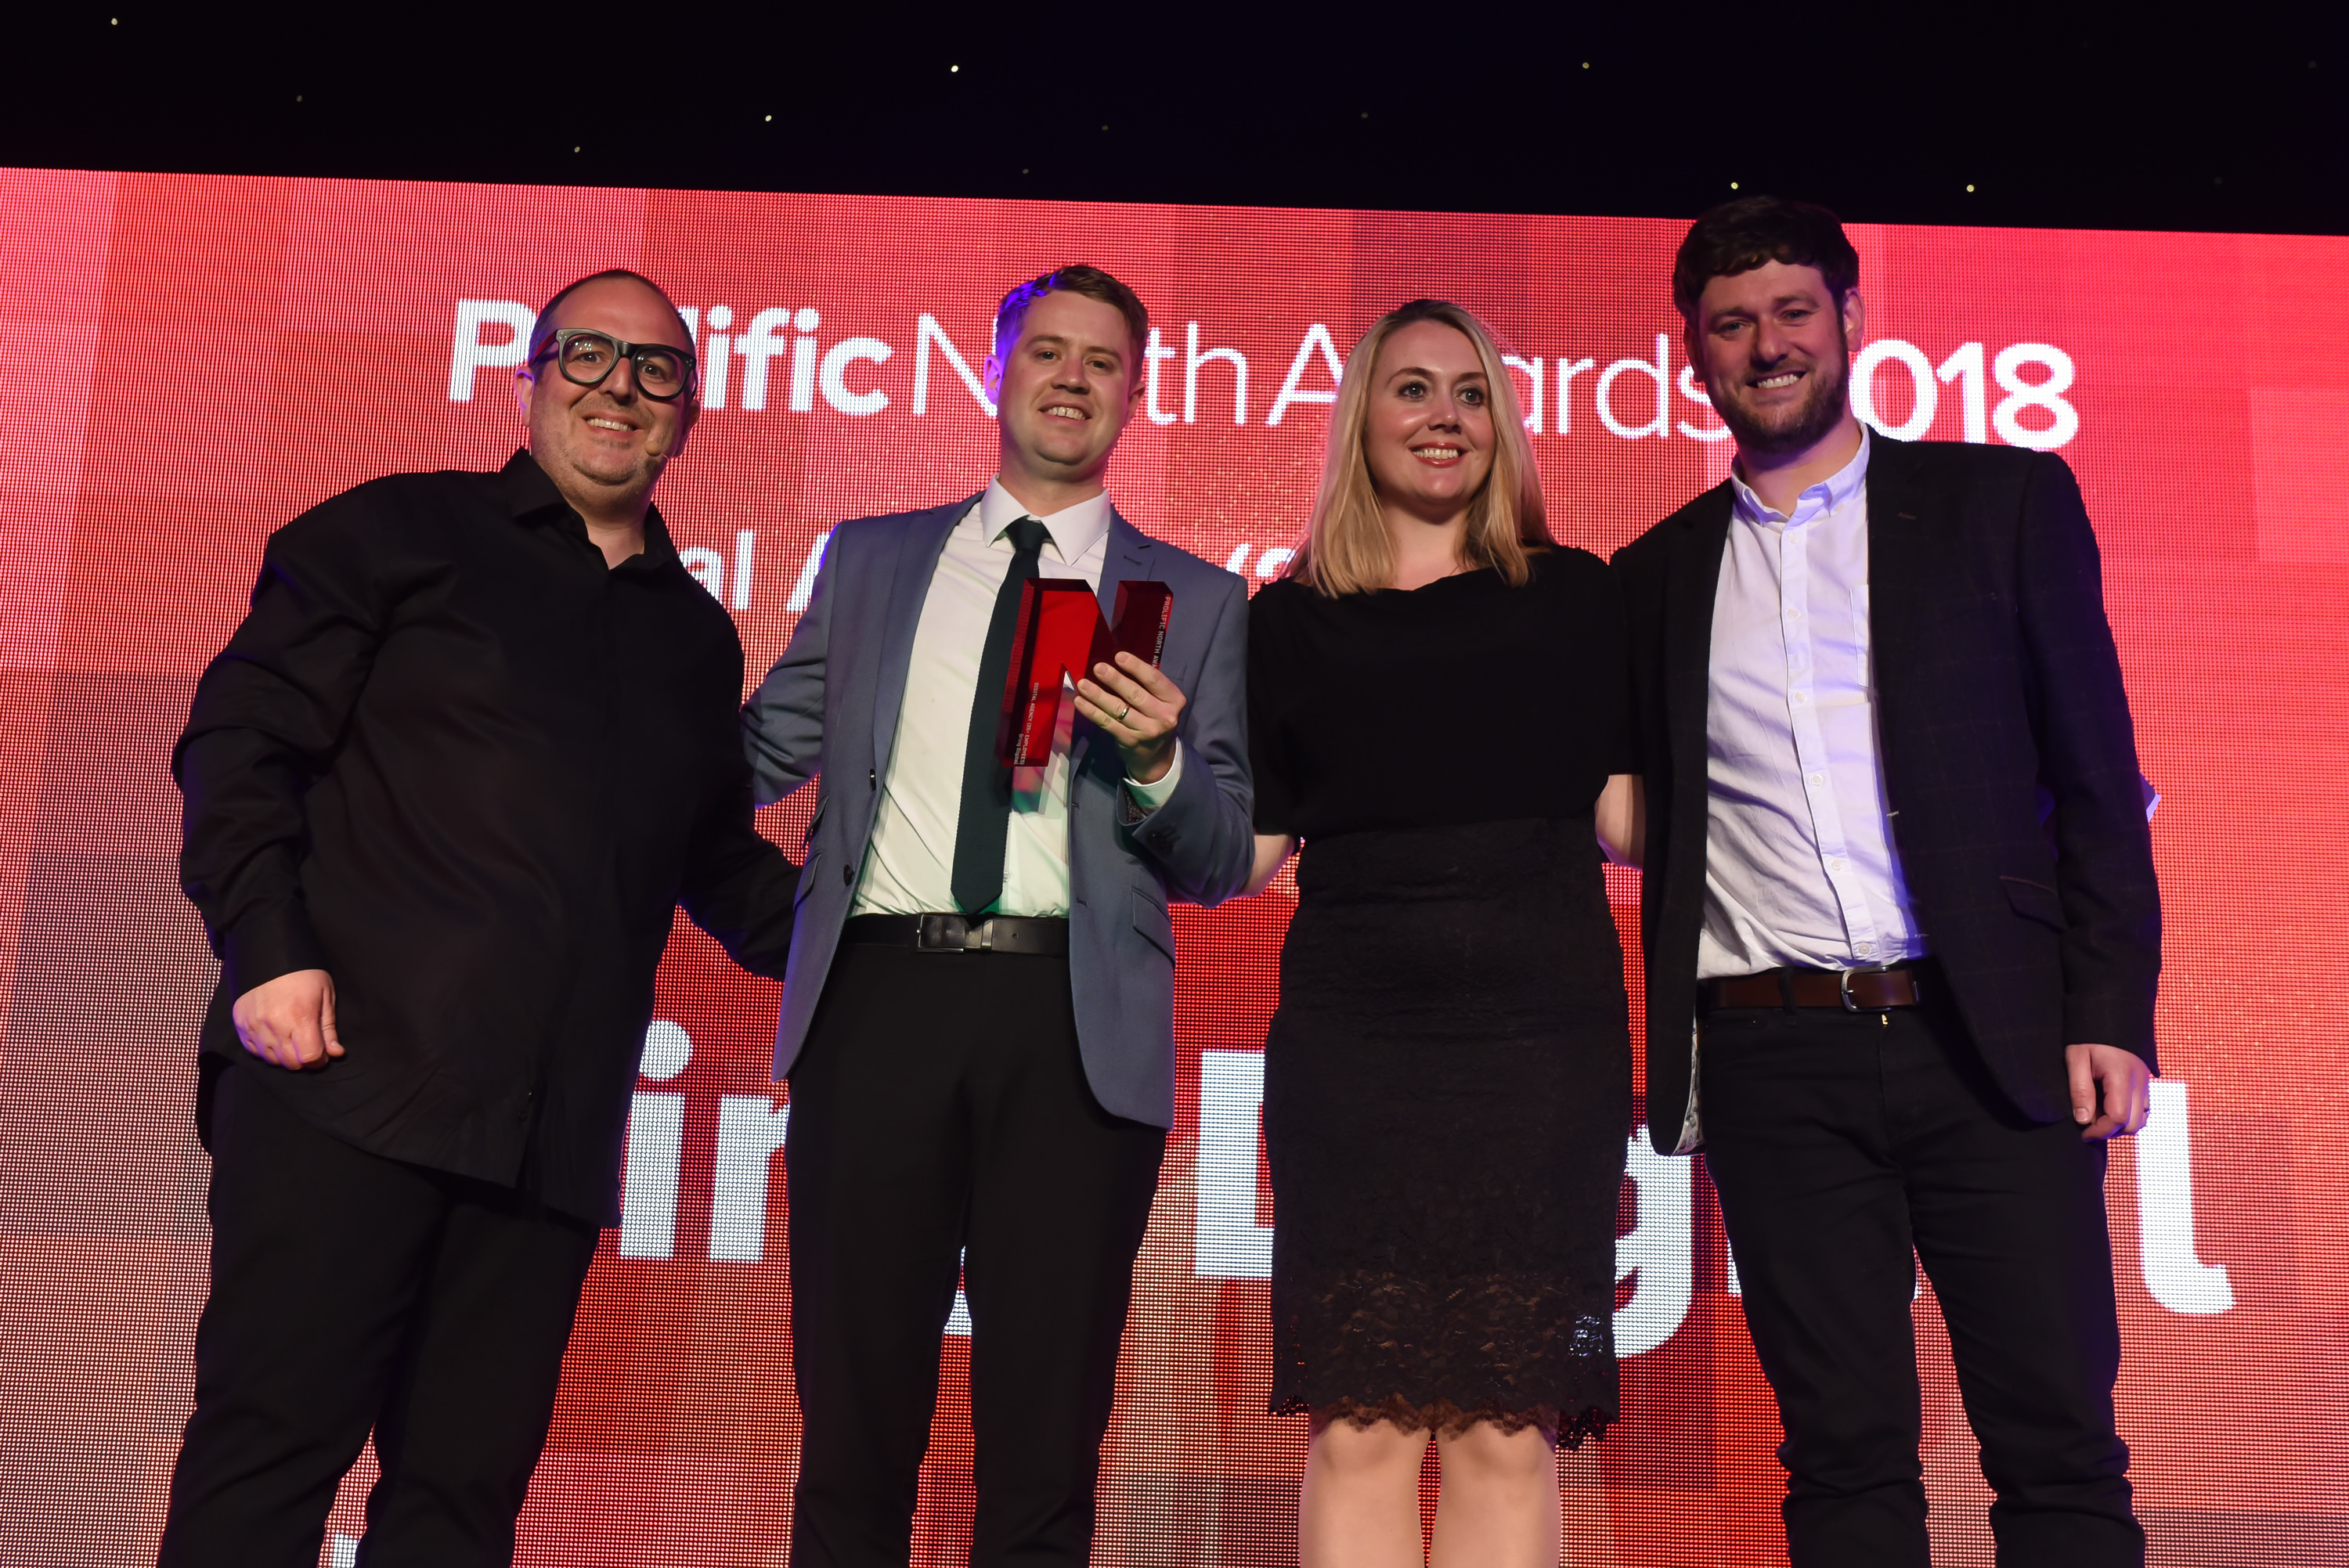 Bring Digital accepting the award for Best Large Digital Agency at Prolific North 2018